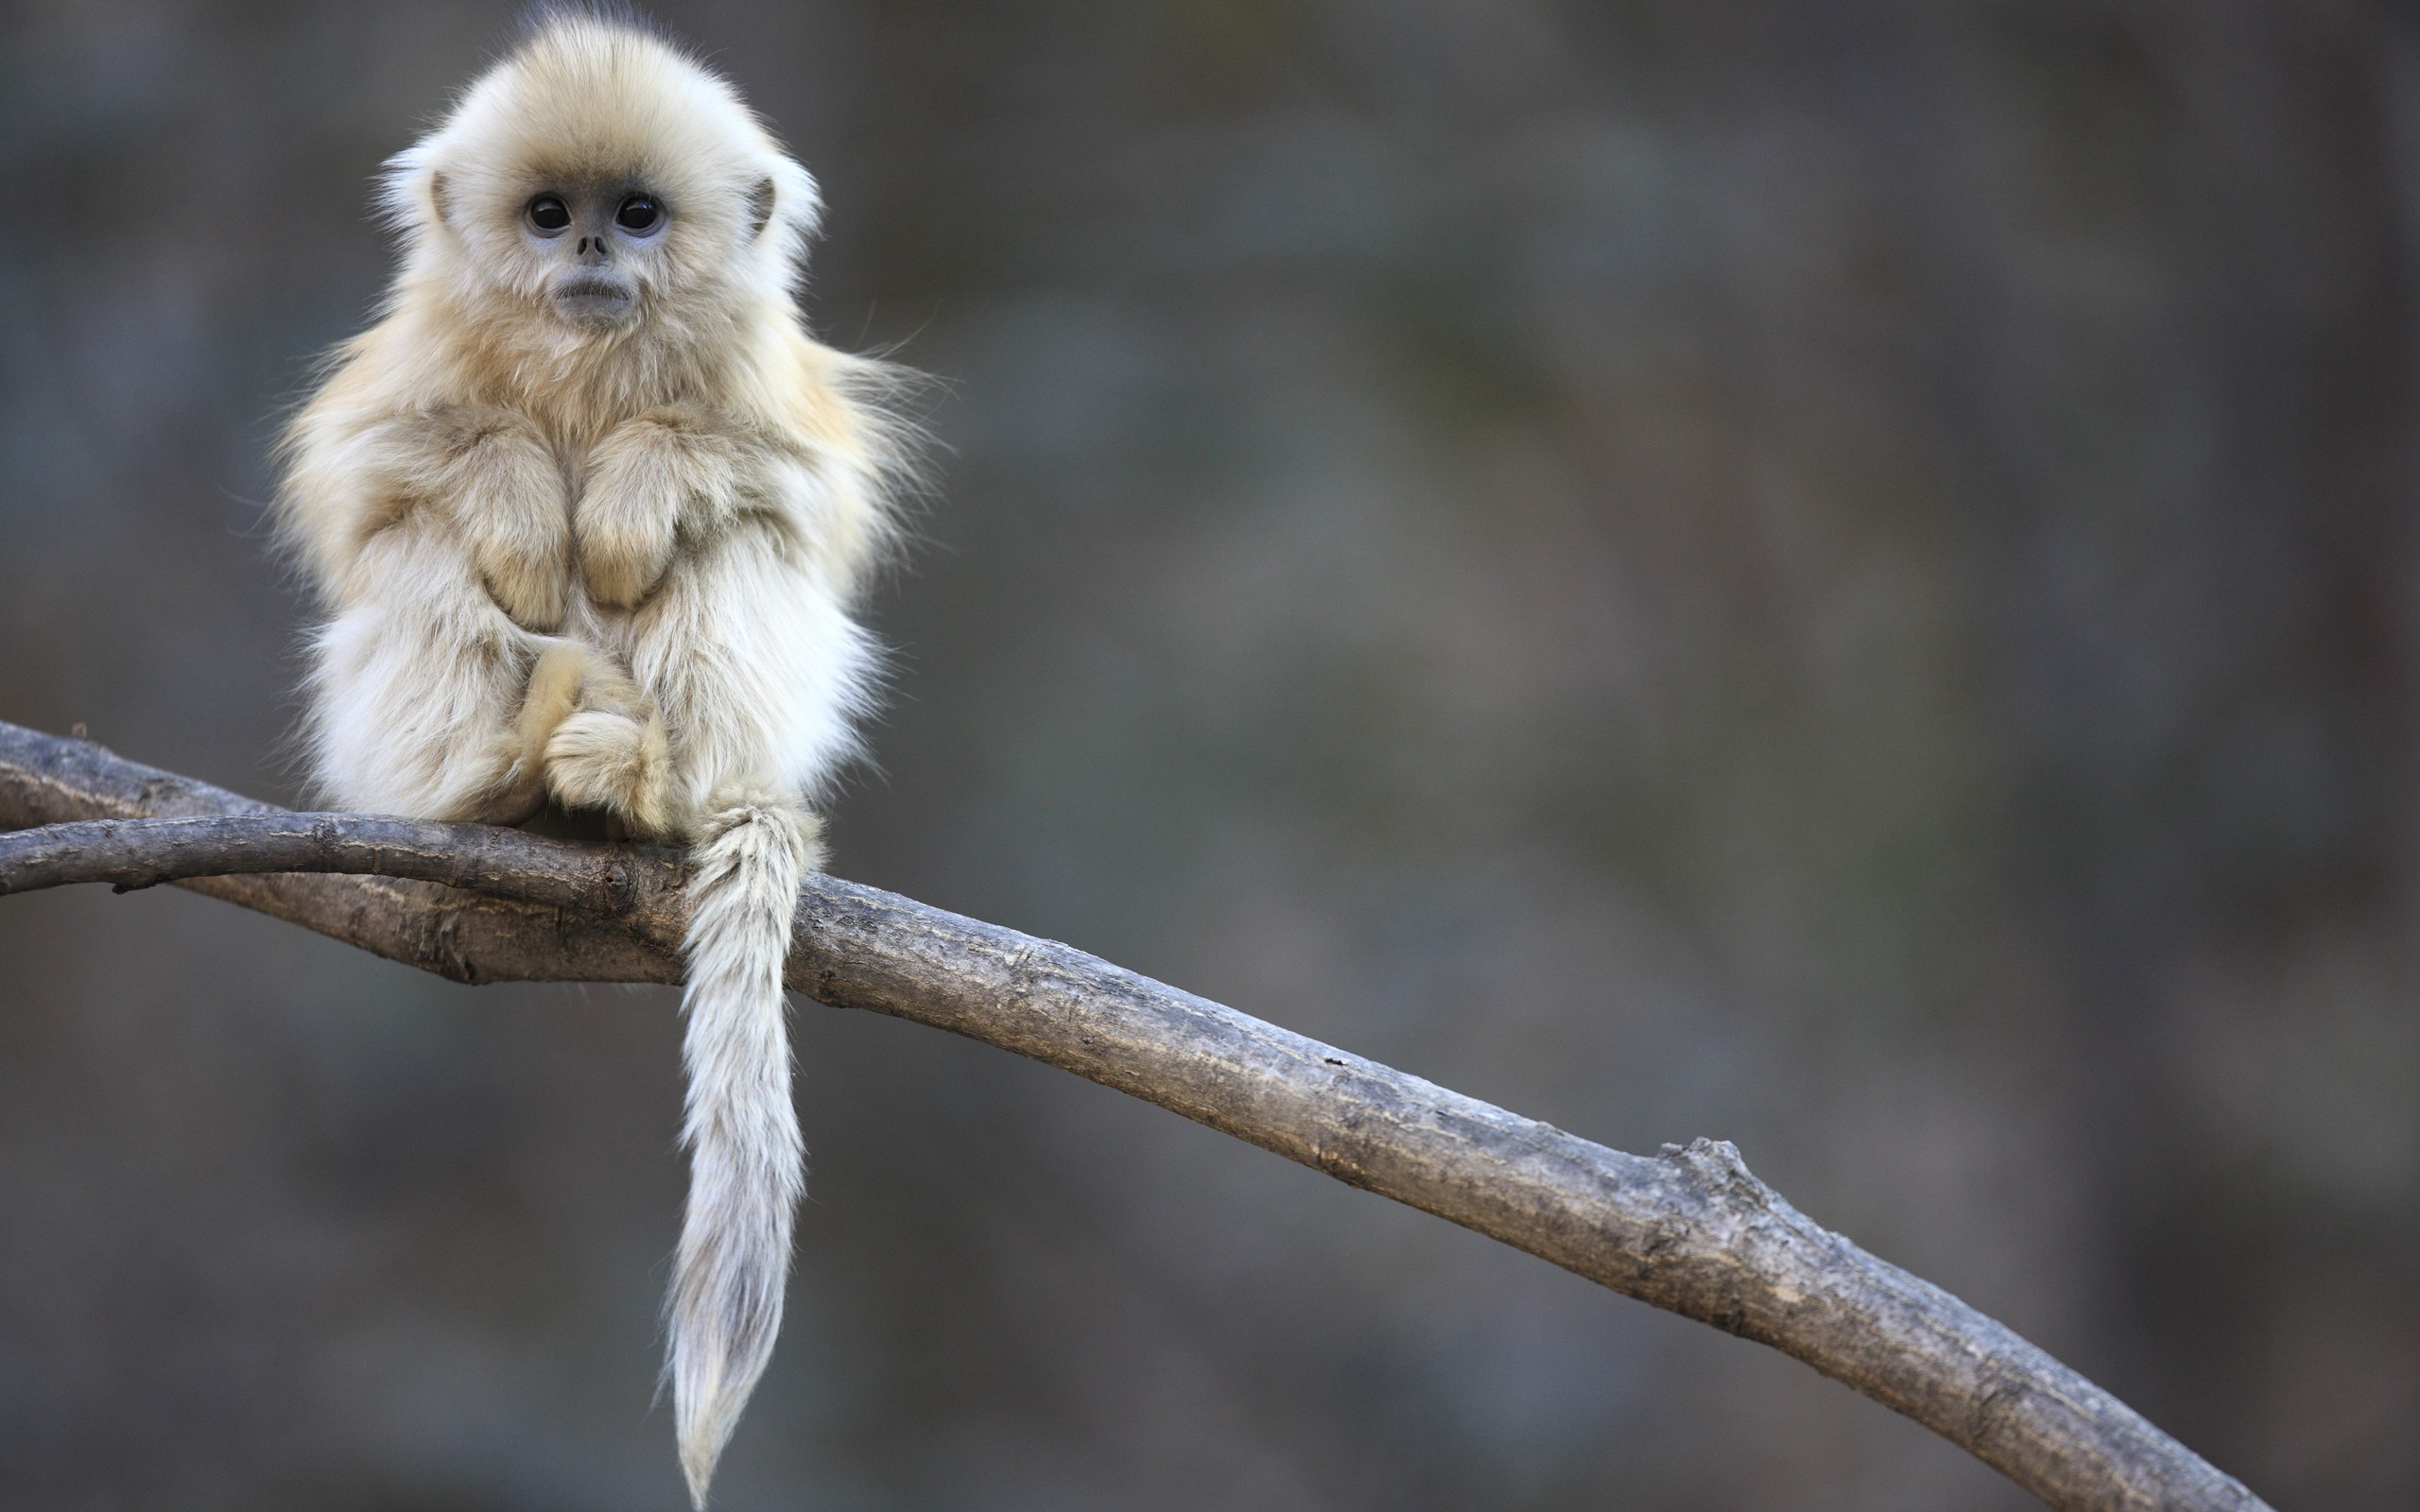 Snub nosed monkey baby wallpaper 2560x1600 2127 WallpaperUP 2560x1600